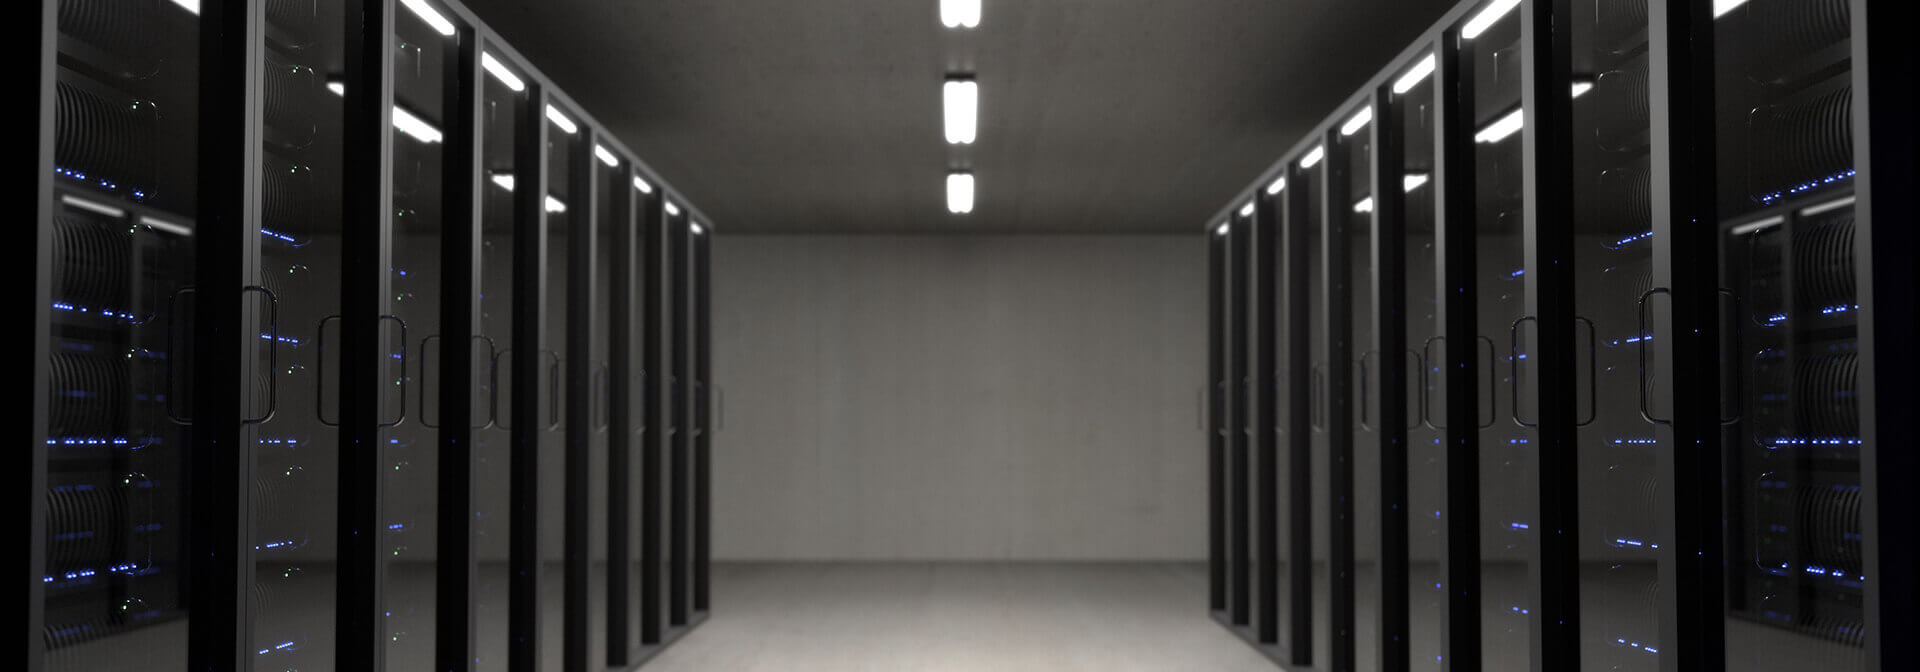 Picture of a server room. Represents cyber liability insurance